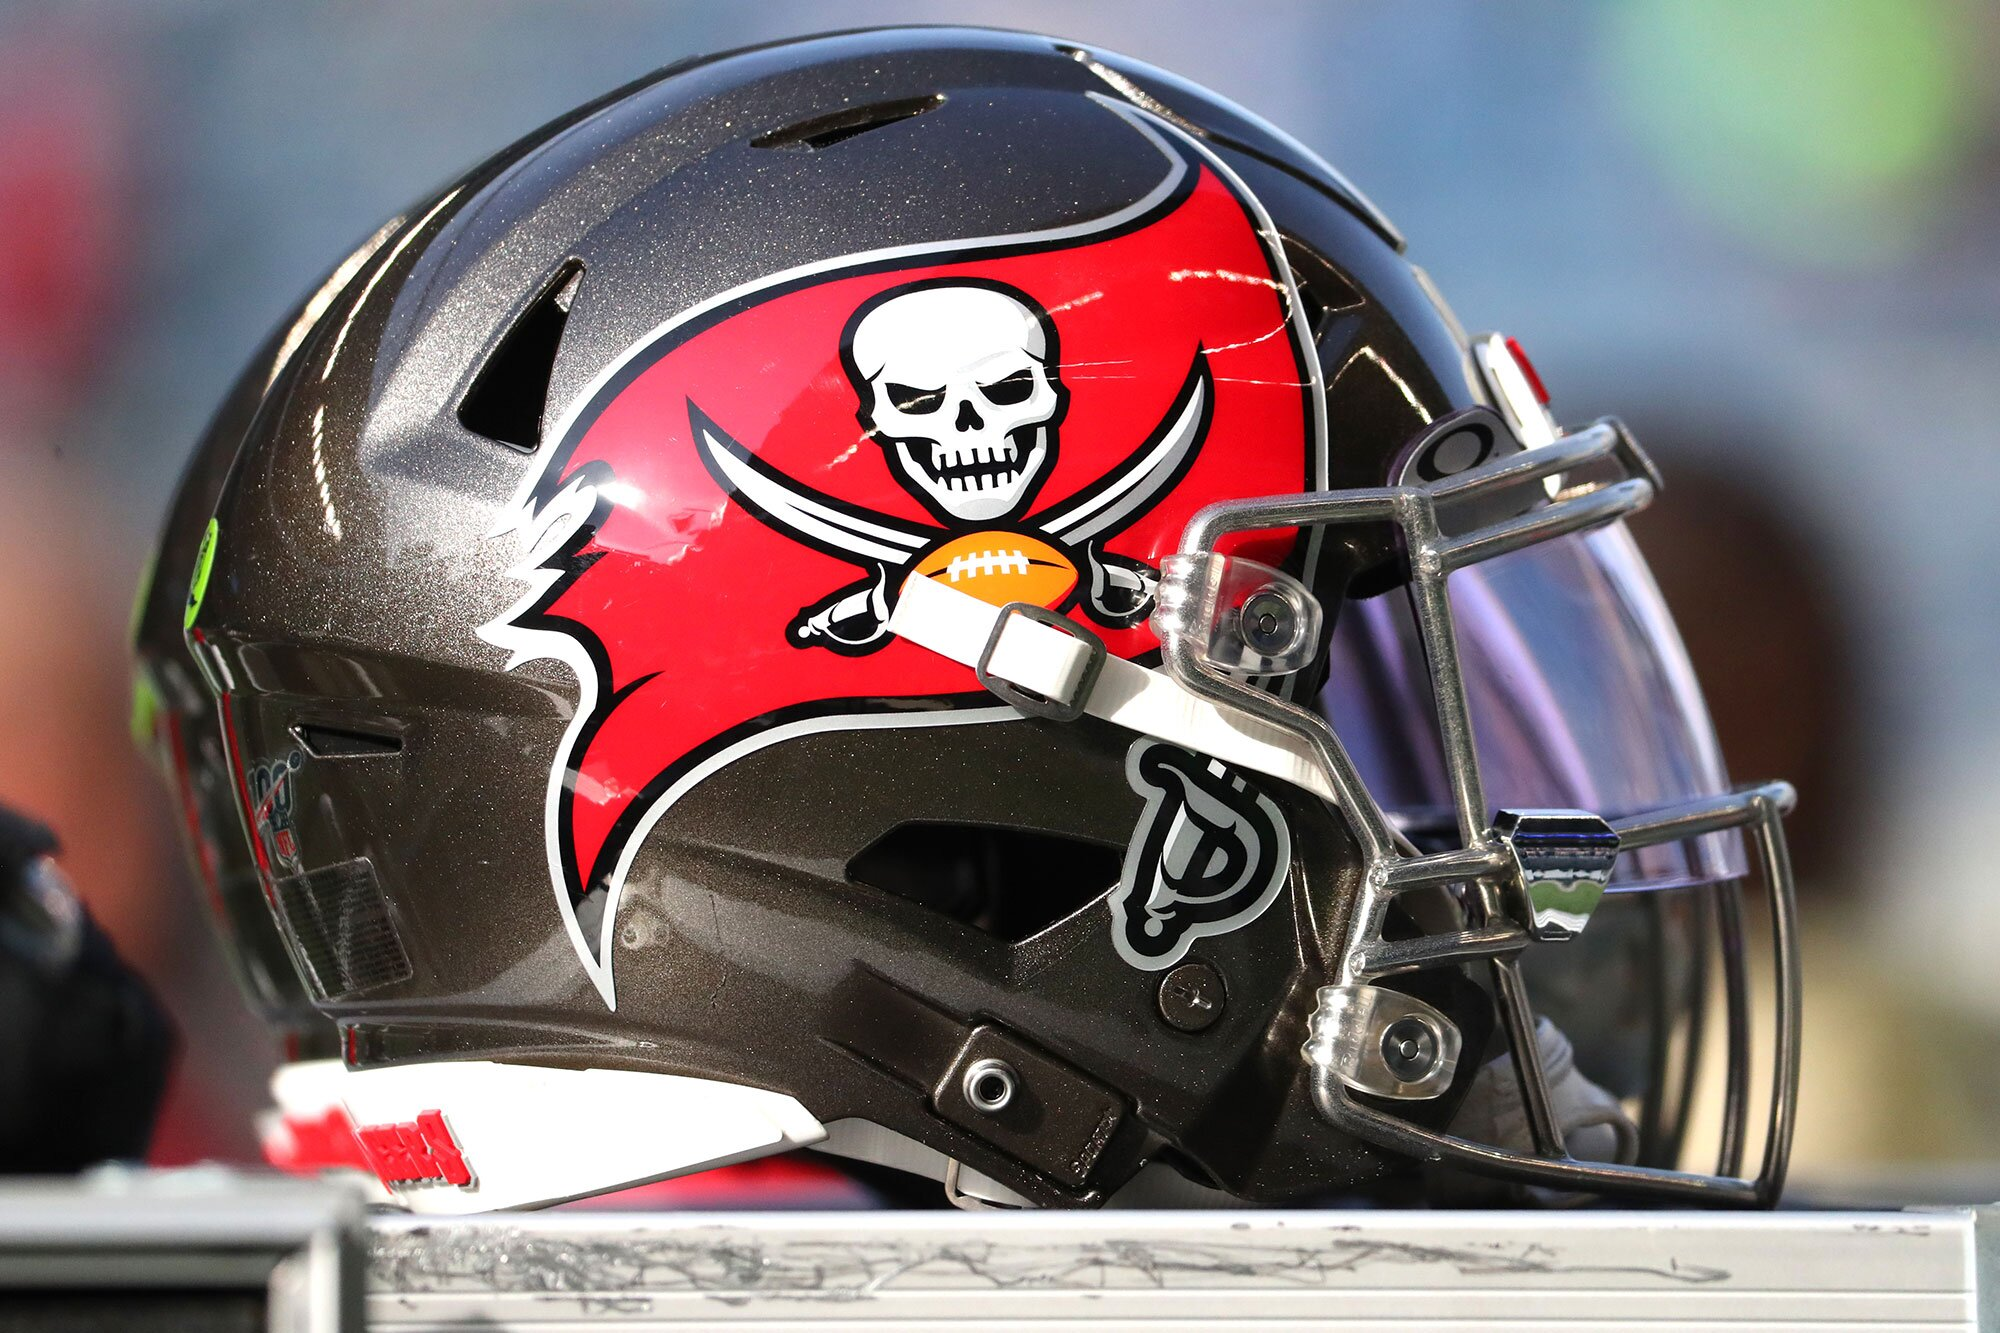 tampa bay buccaneers test positive for coronavirus at training camp people com https people com sports tampa bay buccaneers test positive coronavirus training camp